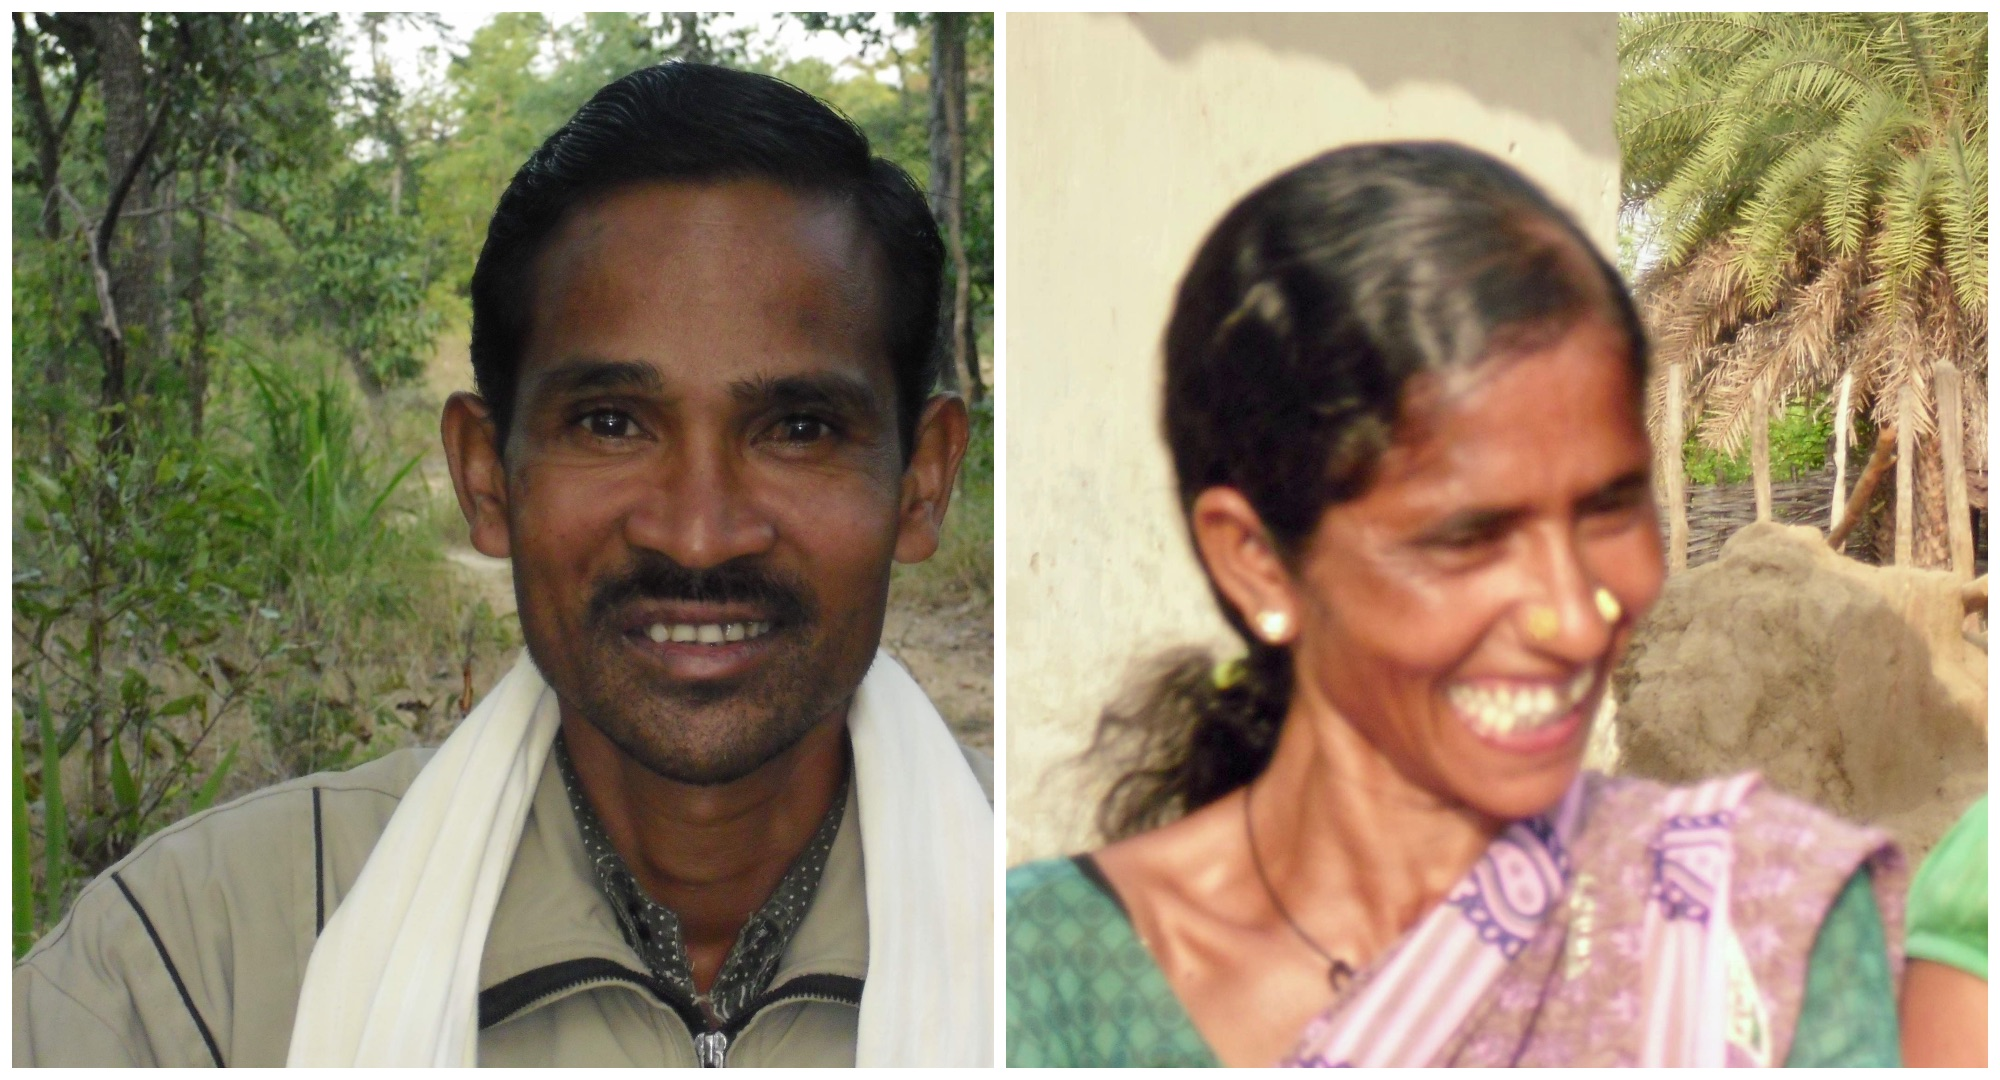 How the Chhattisgarh Police Turned a Well-Regarded Sarpanch Into a Fugitive, and Now Captive